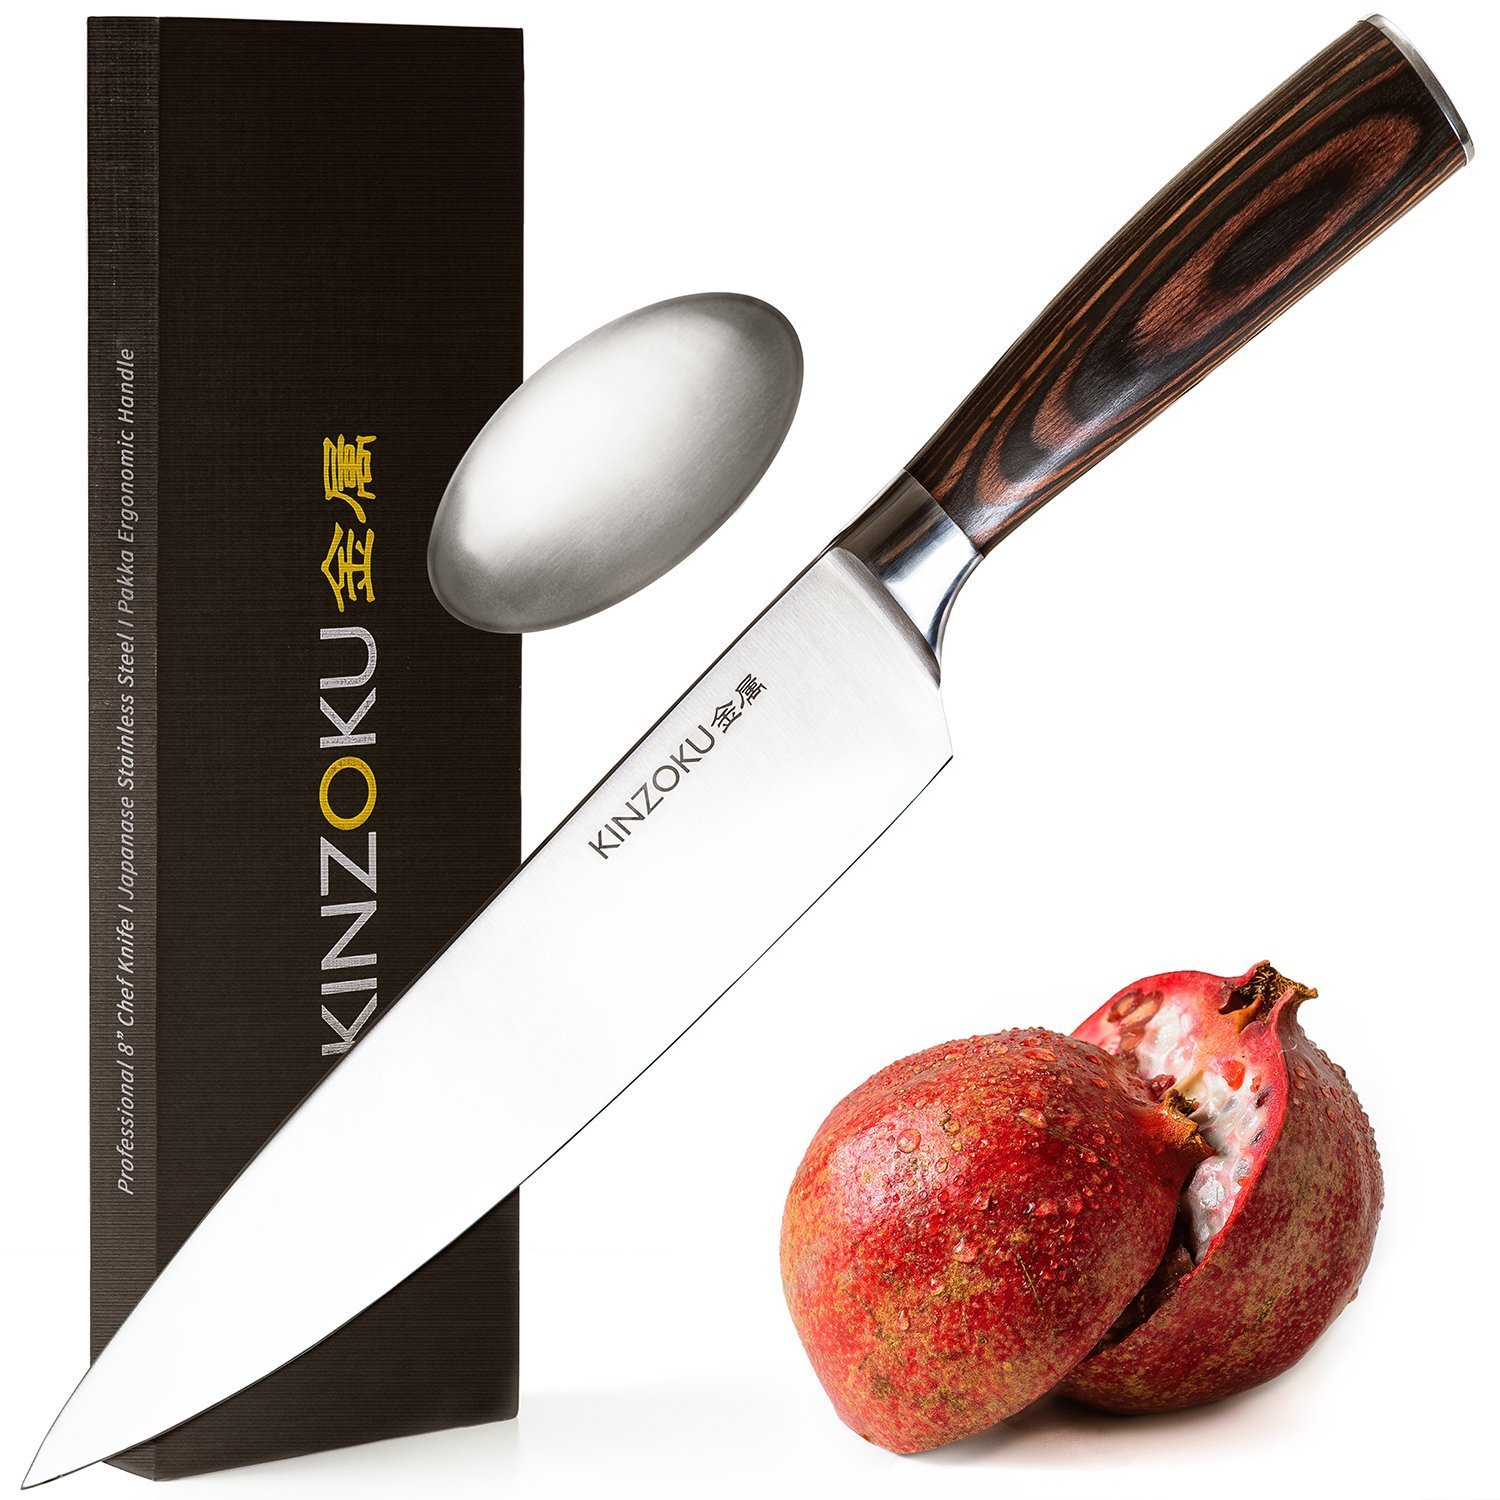 KINZOKU Professional Chef Knife 8 inch - Japanese Stainless Steel - Sharp Blade and Rust-Free Chopping Knife - Pakka Handle - Kitchen Knife and Odor Removing Soap - with Premium Gift Box